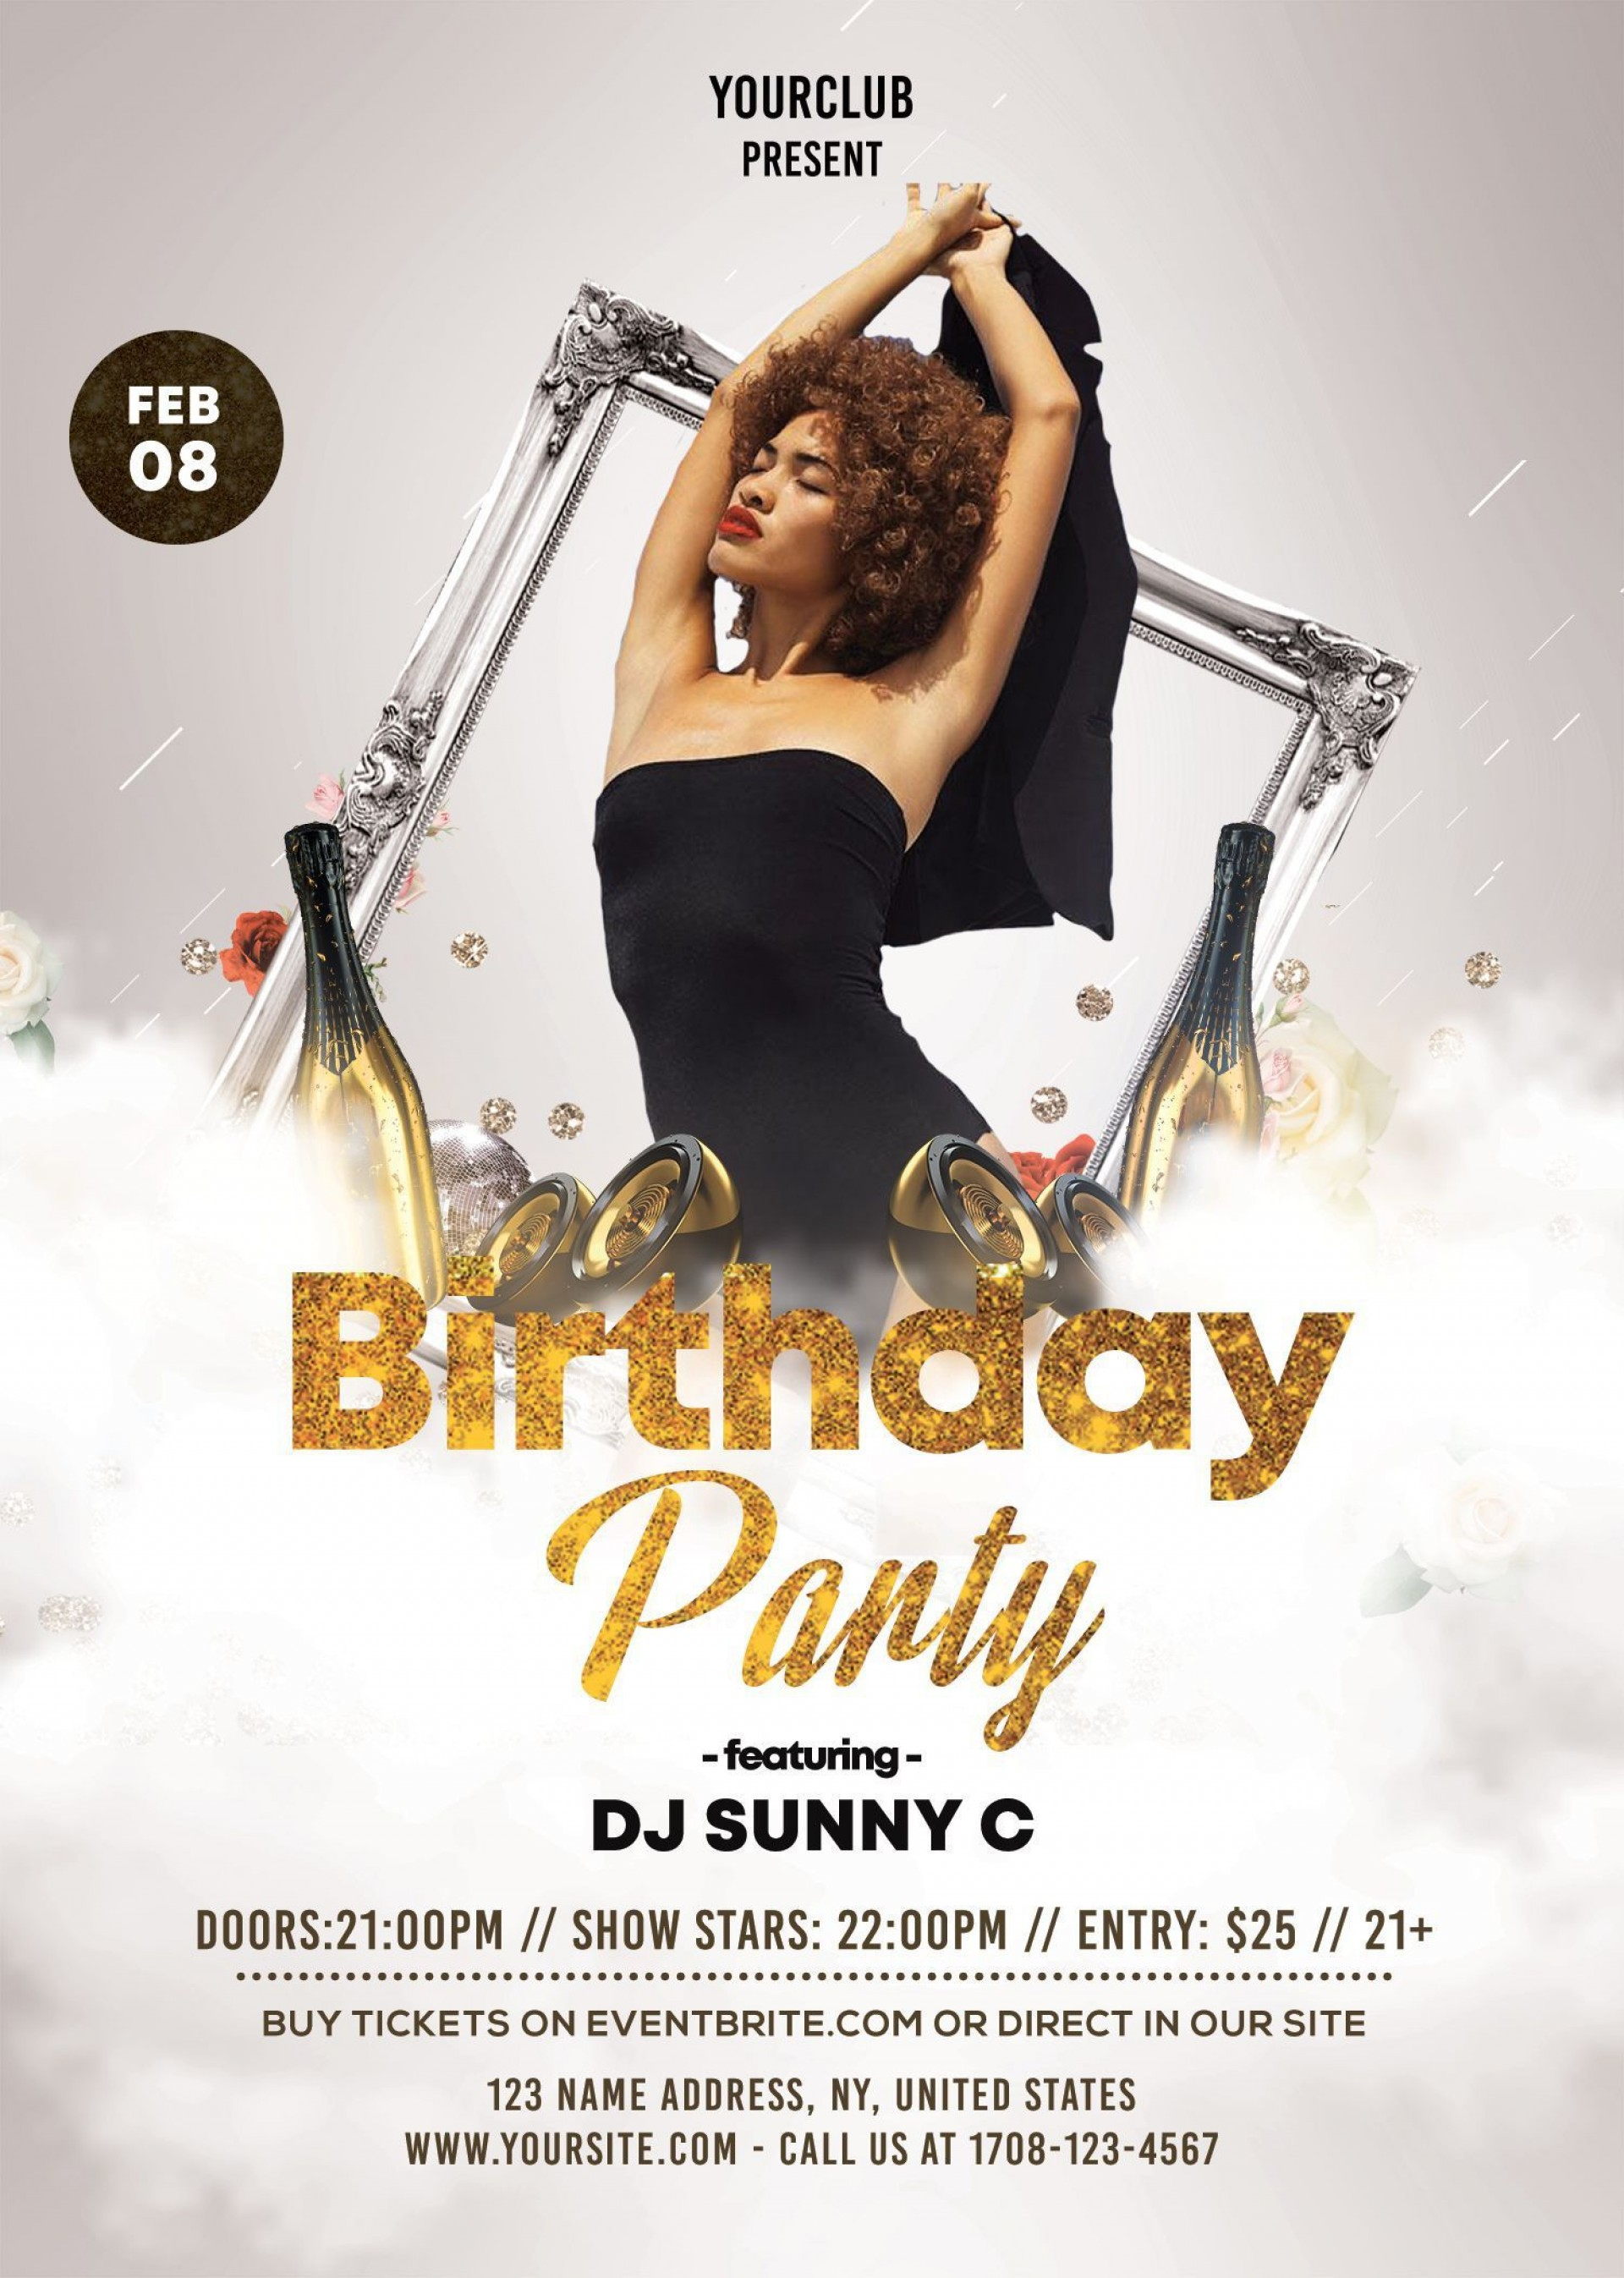 004 Unusual Party Flyer Psd Template Free Download Photo  Rave1920